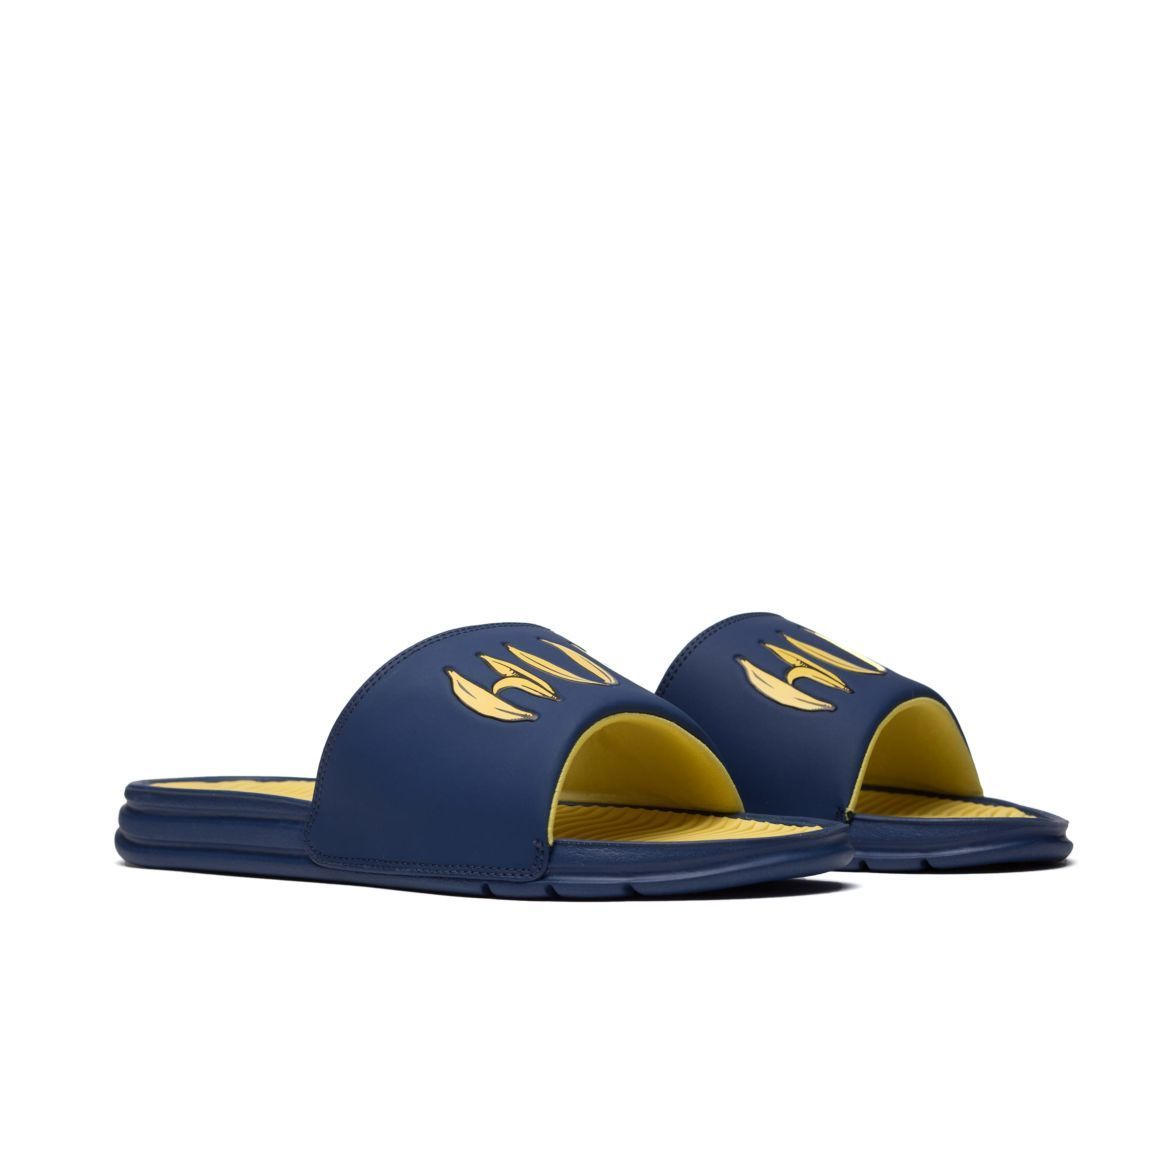 【HUF】BANANA SLIDE